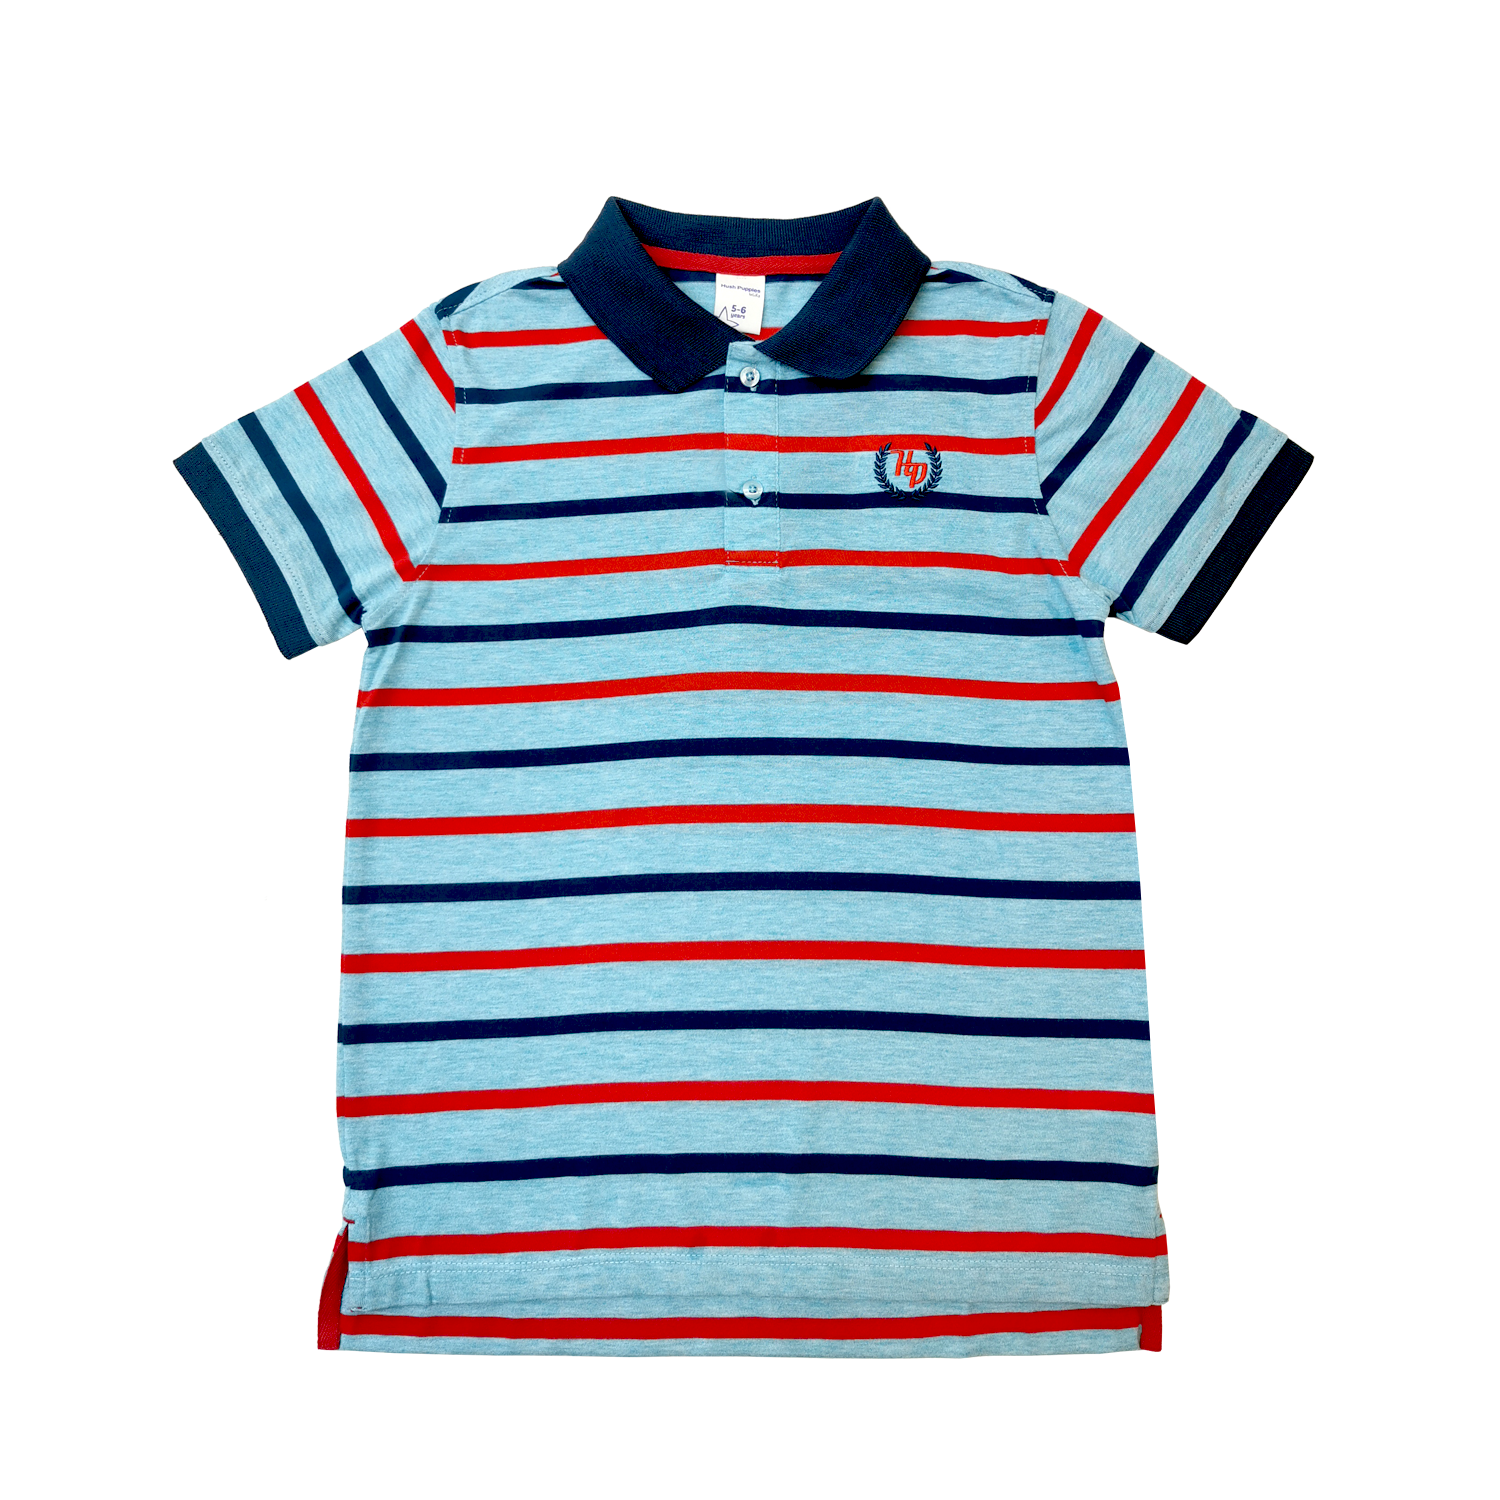 Hush Puppies Ryan Boy Stripe Polo With Embroidery  HBP039358